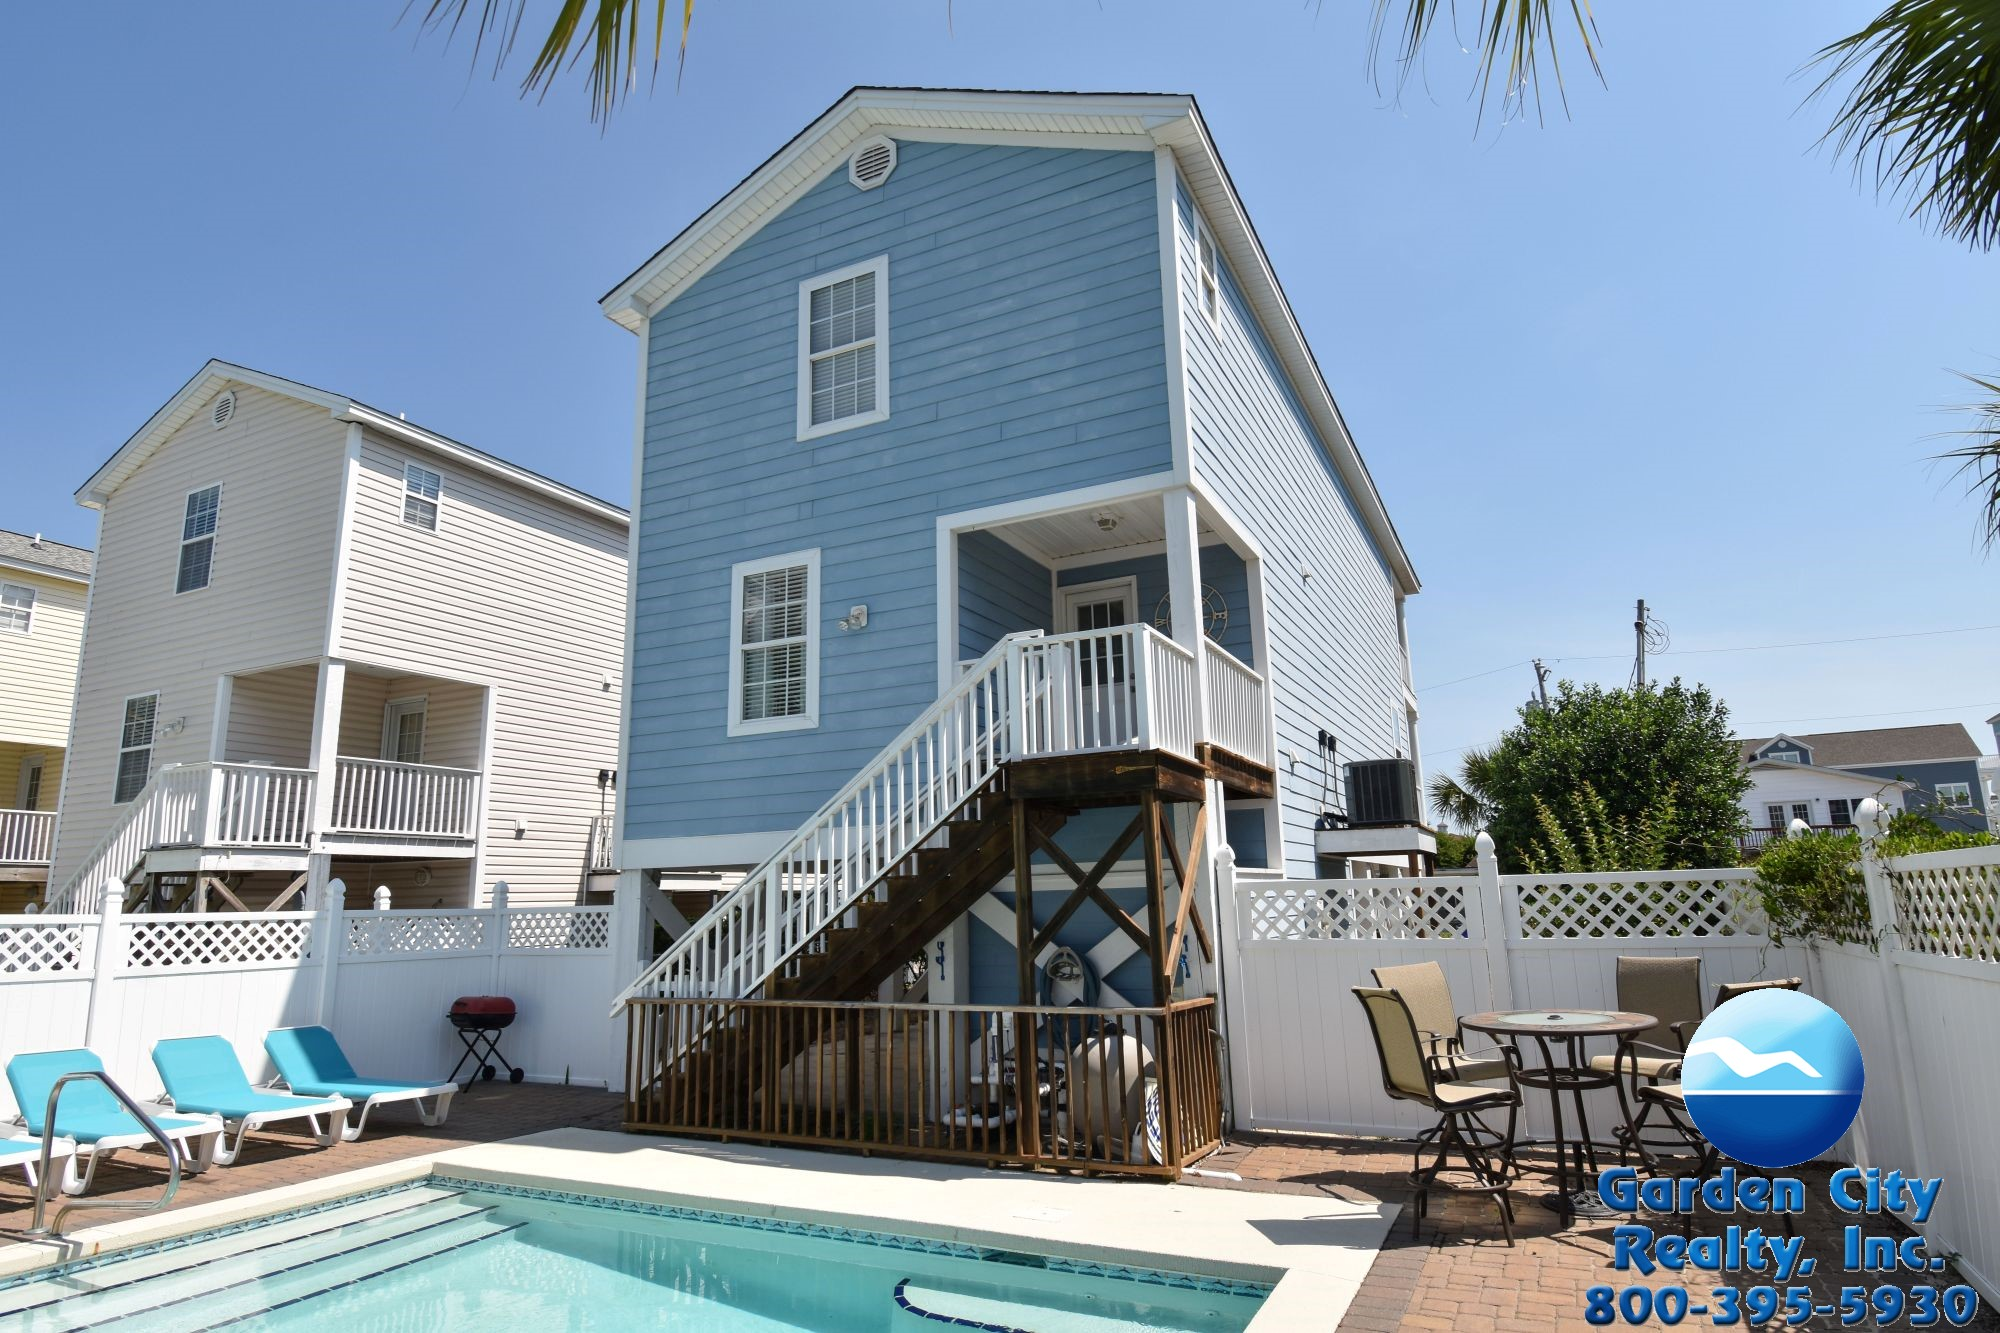 Actually Ours Surfside Beach House Rental Garden City Realty